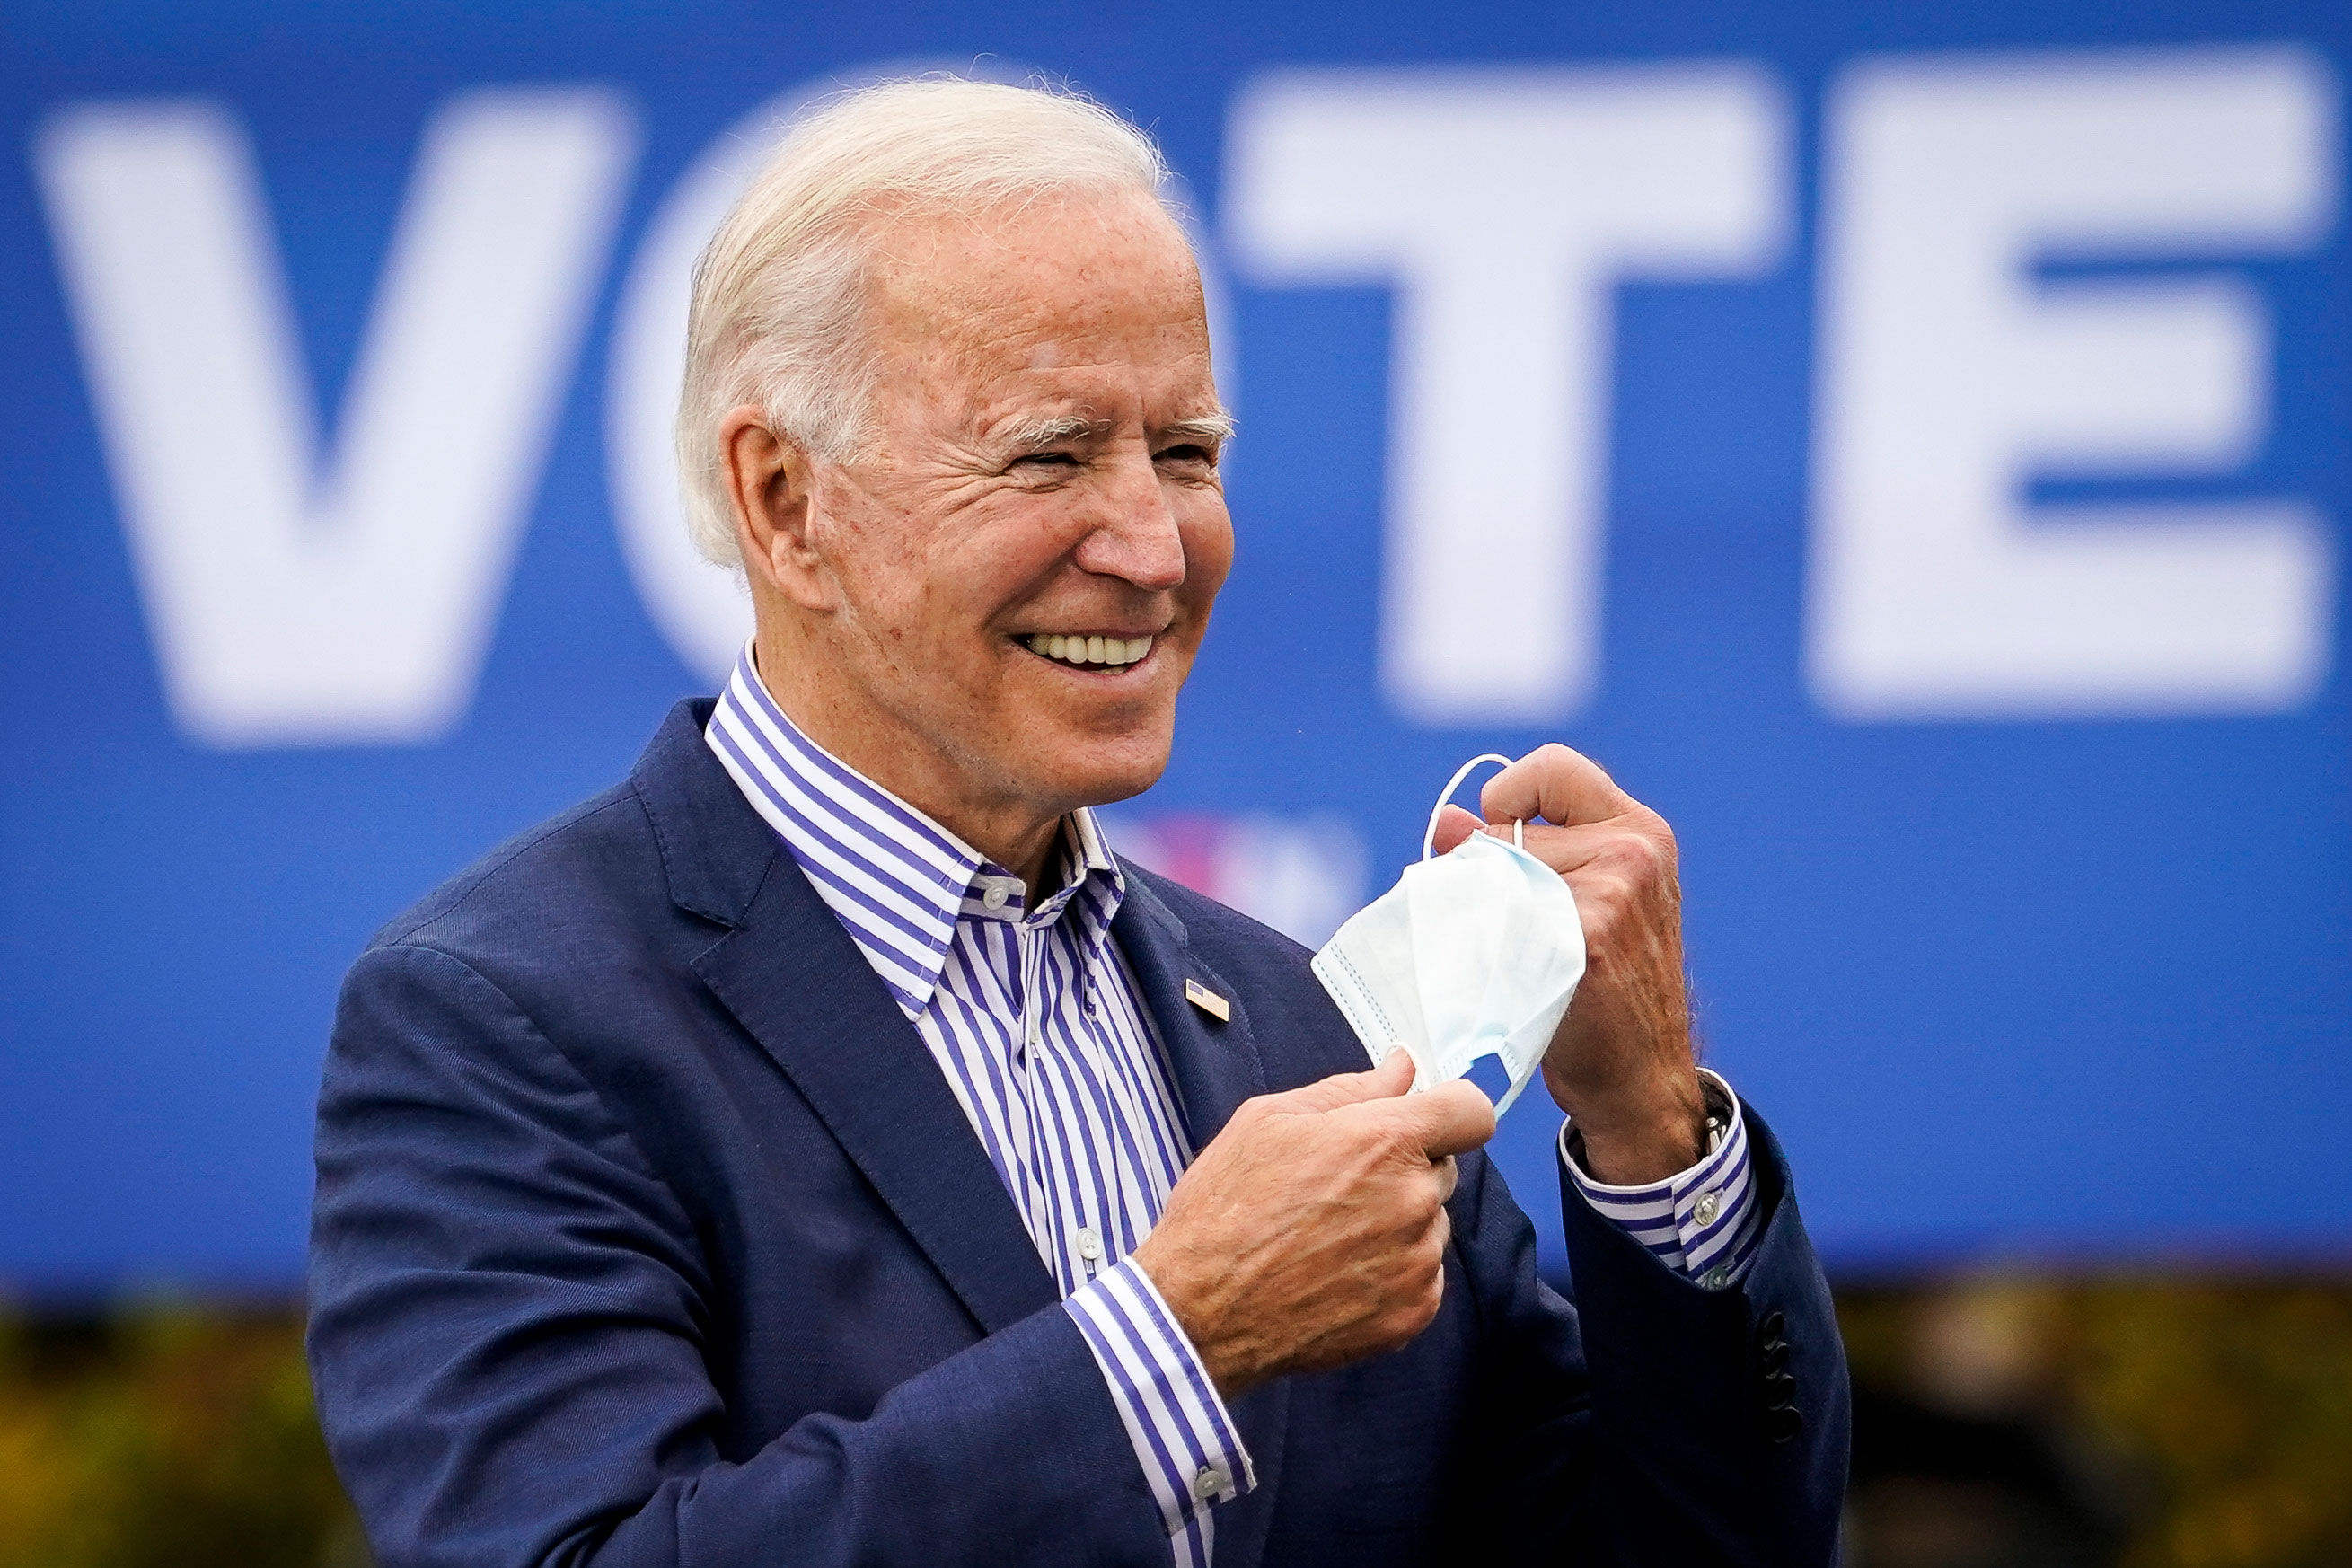 Conservative New Hampshire paper backs Biden — its first Democratic endorsement in 100 years